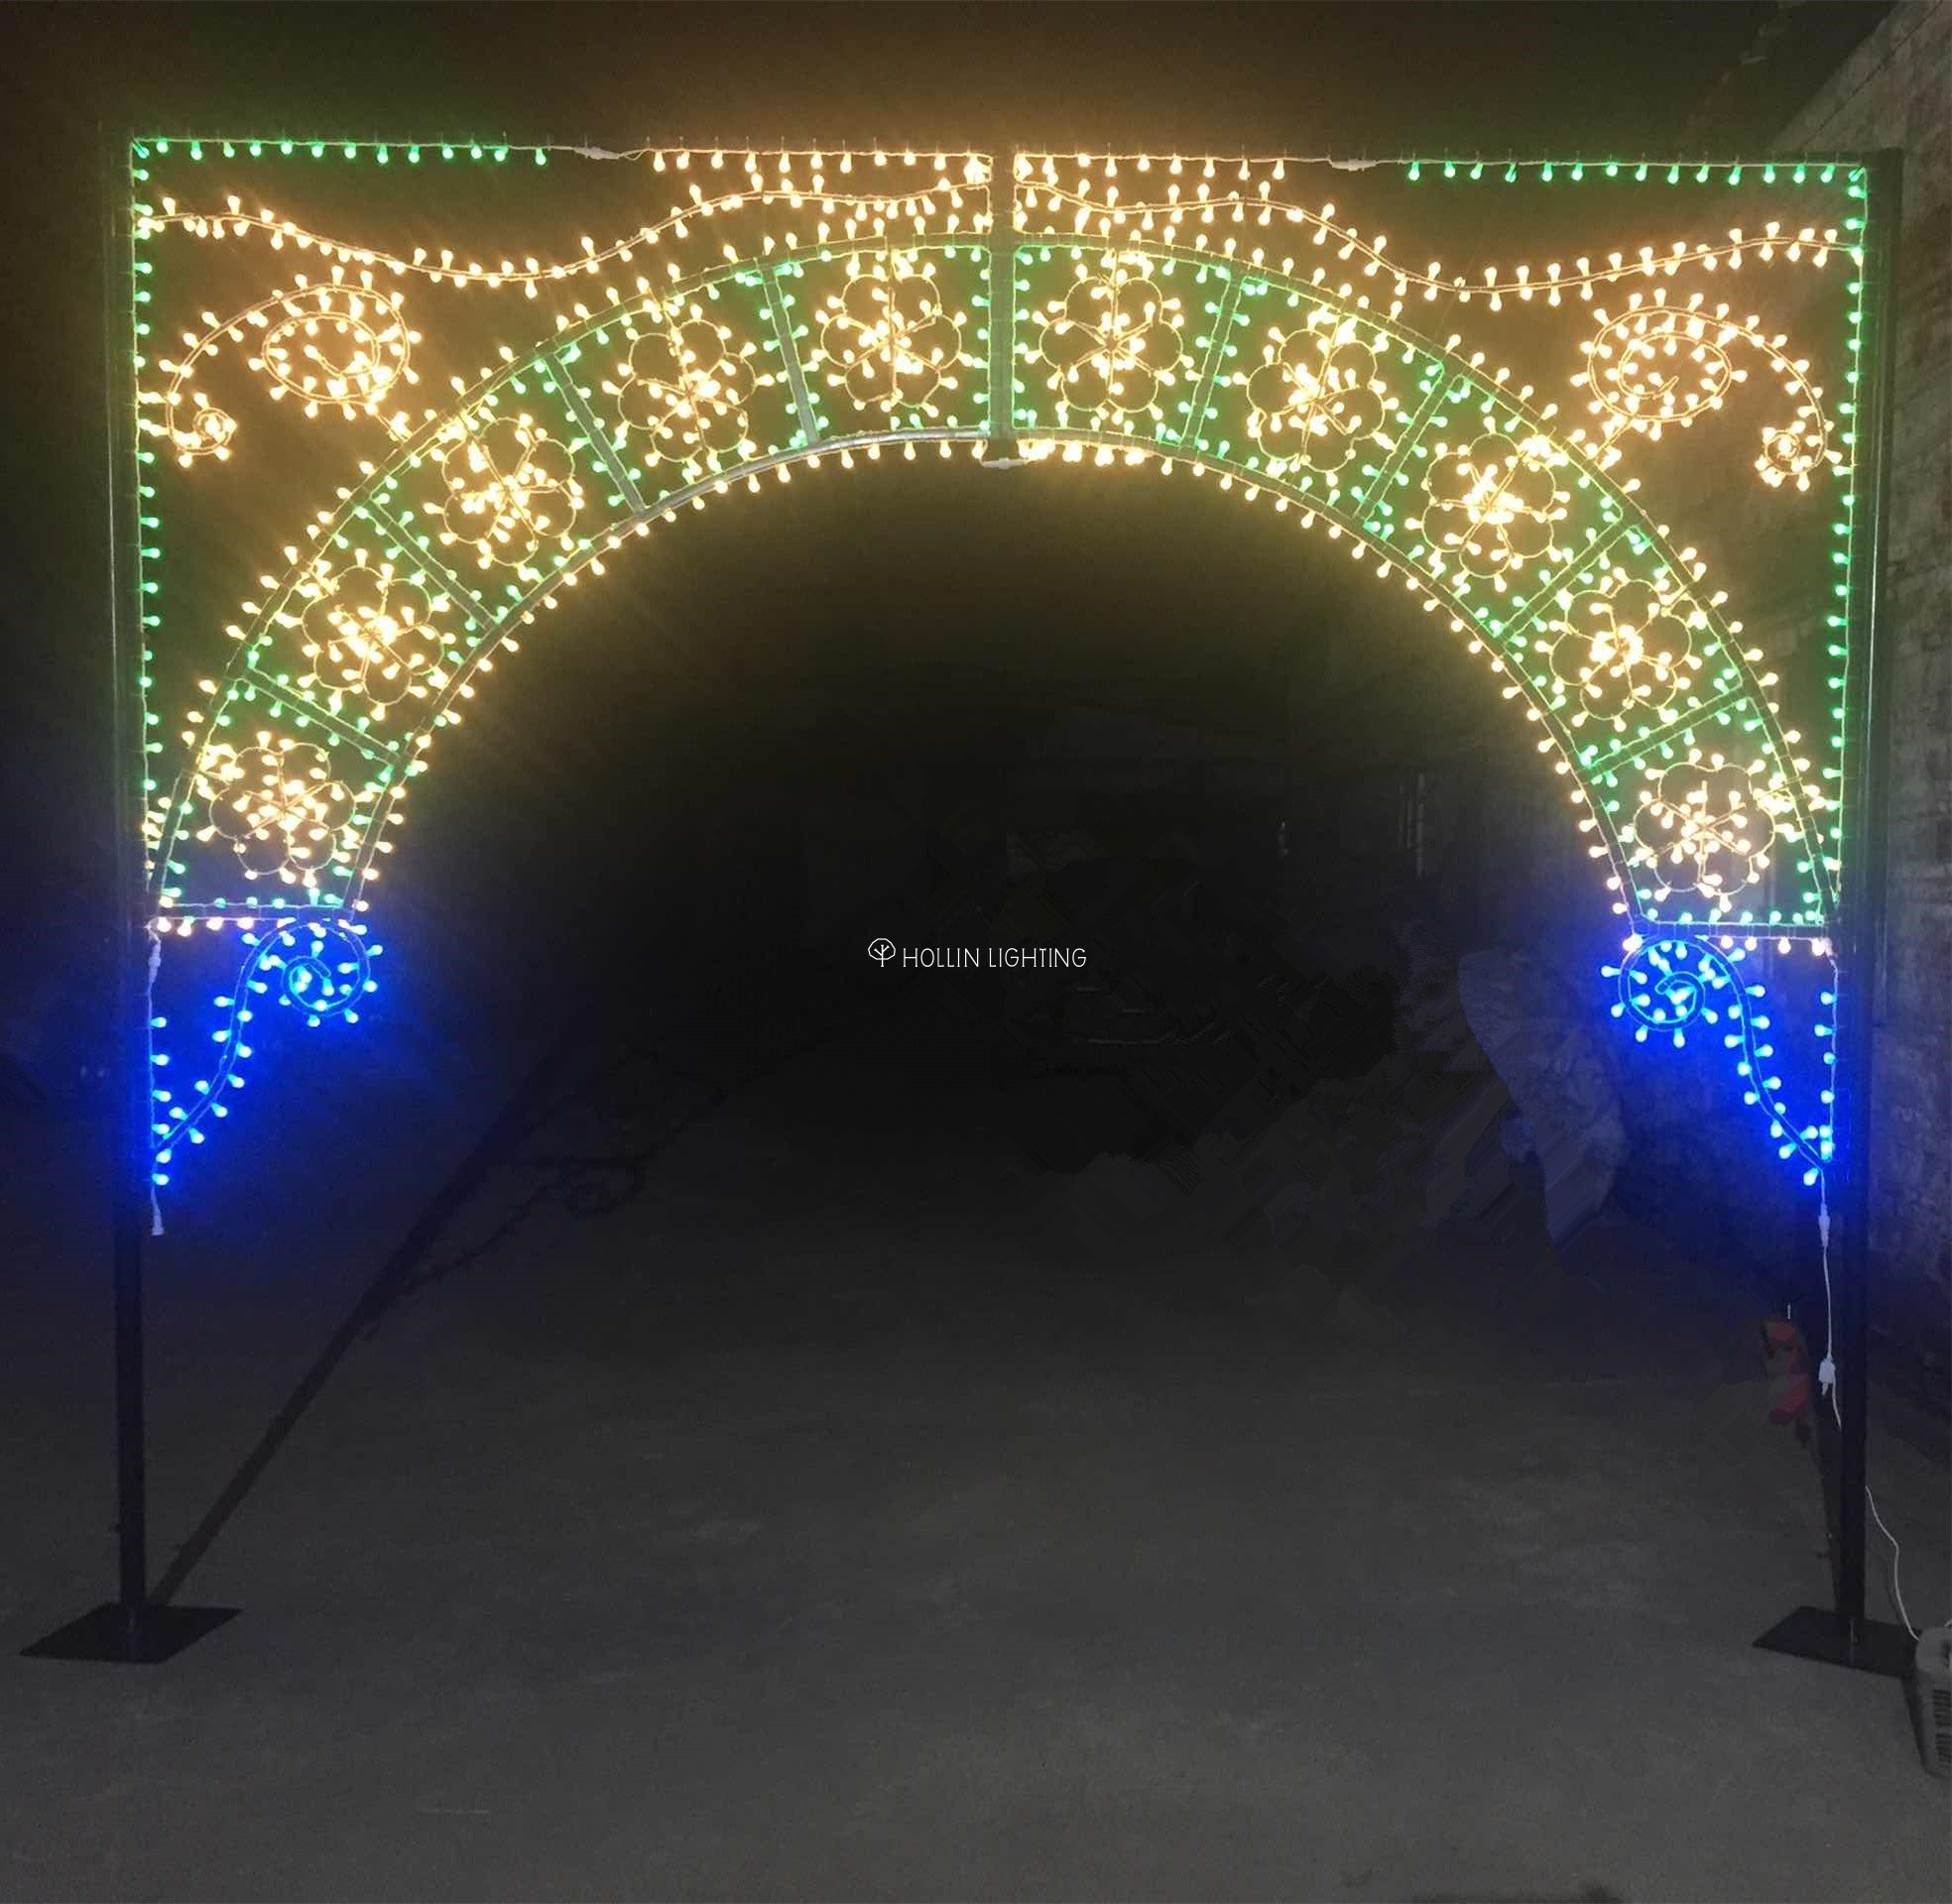 led for bestchoiceproducts outdoor product lighting rope choice shop rakuten w plugin lights decor decorative products indoor best